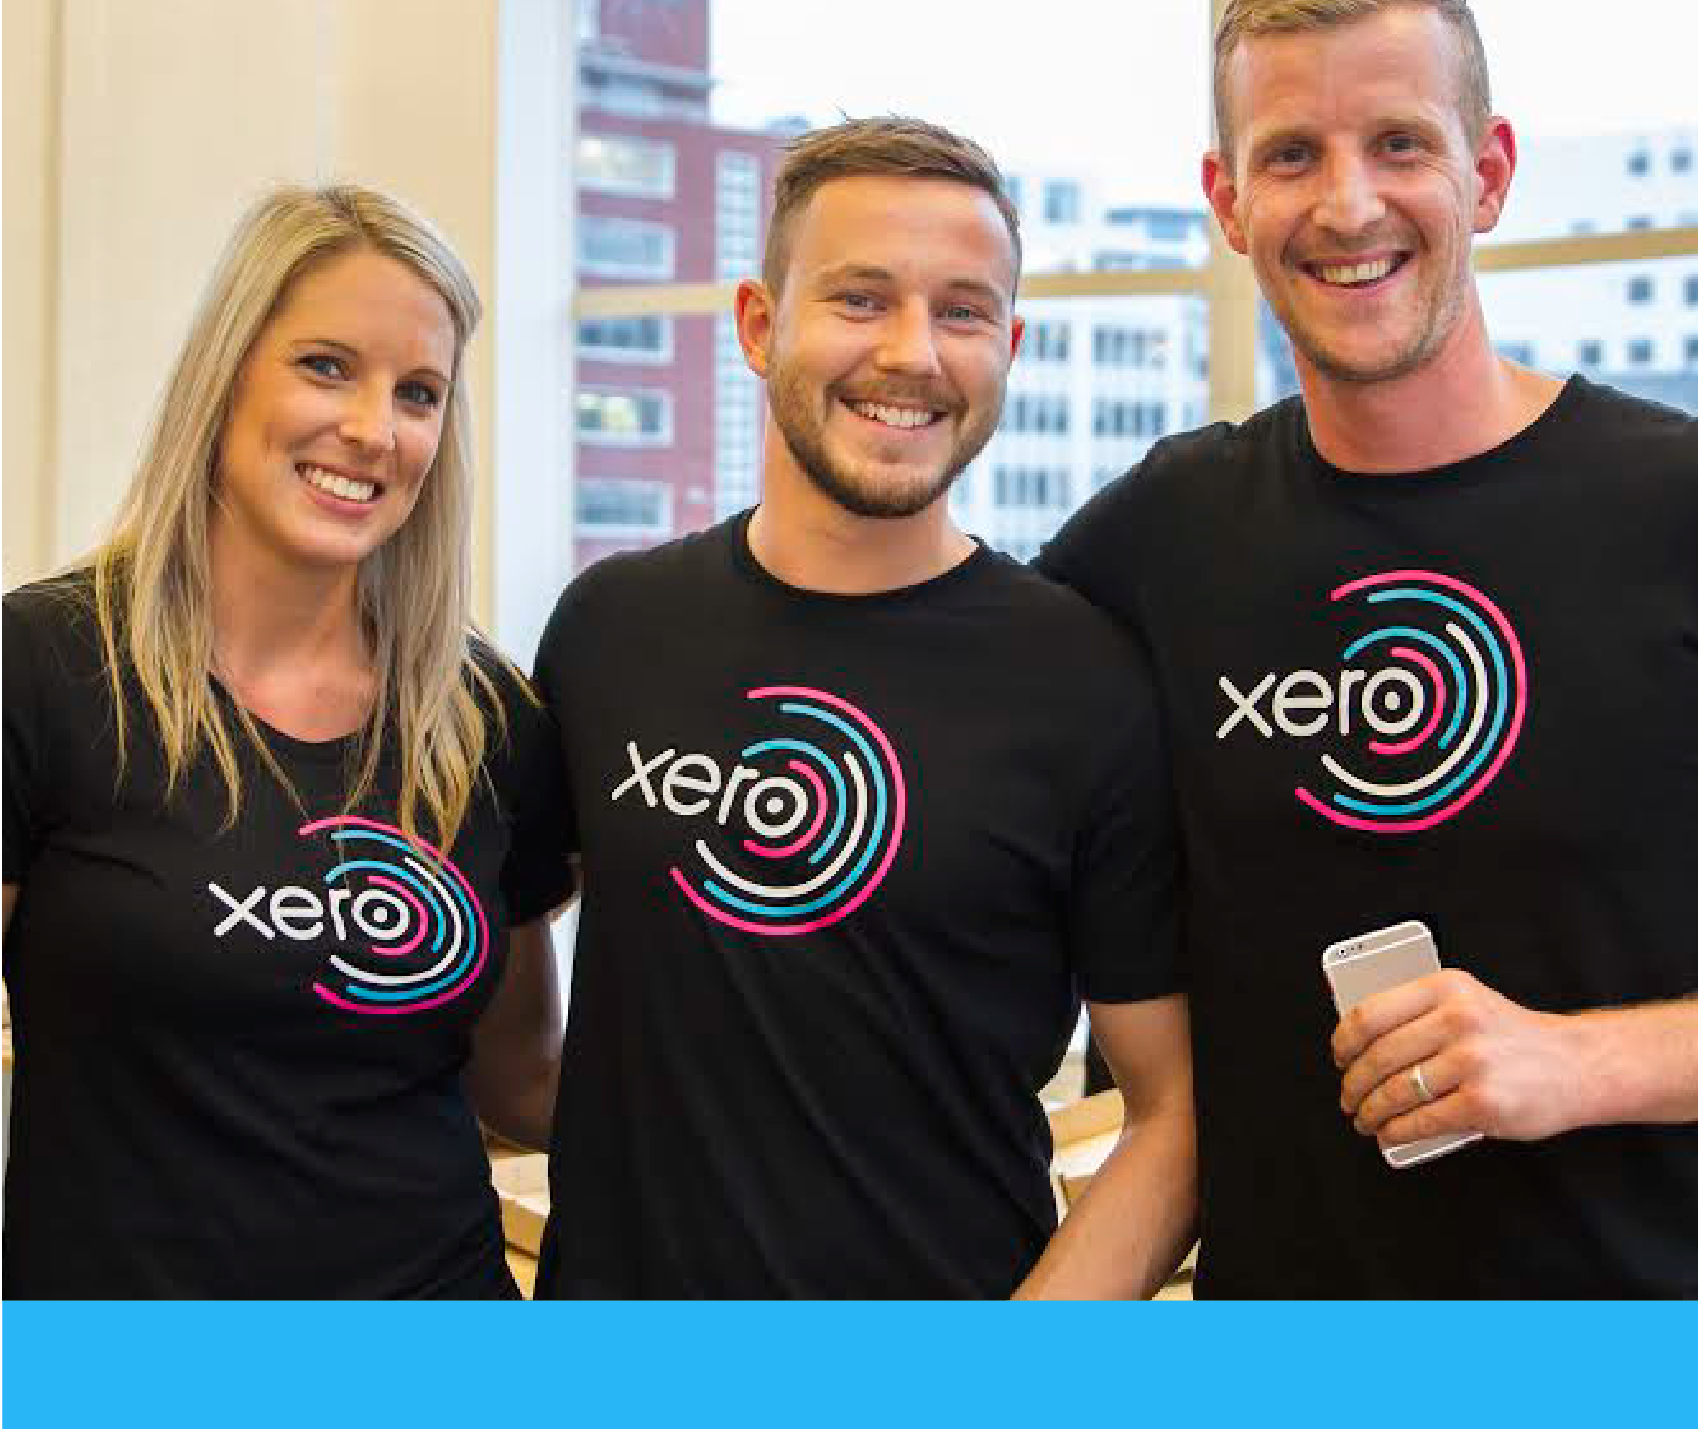 3 members of the Xero team